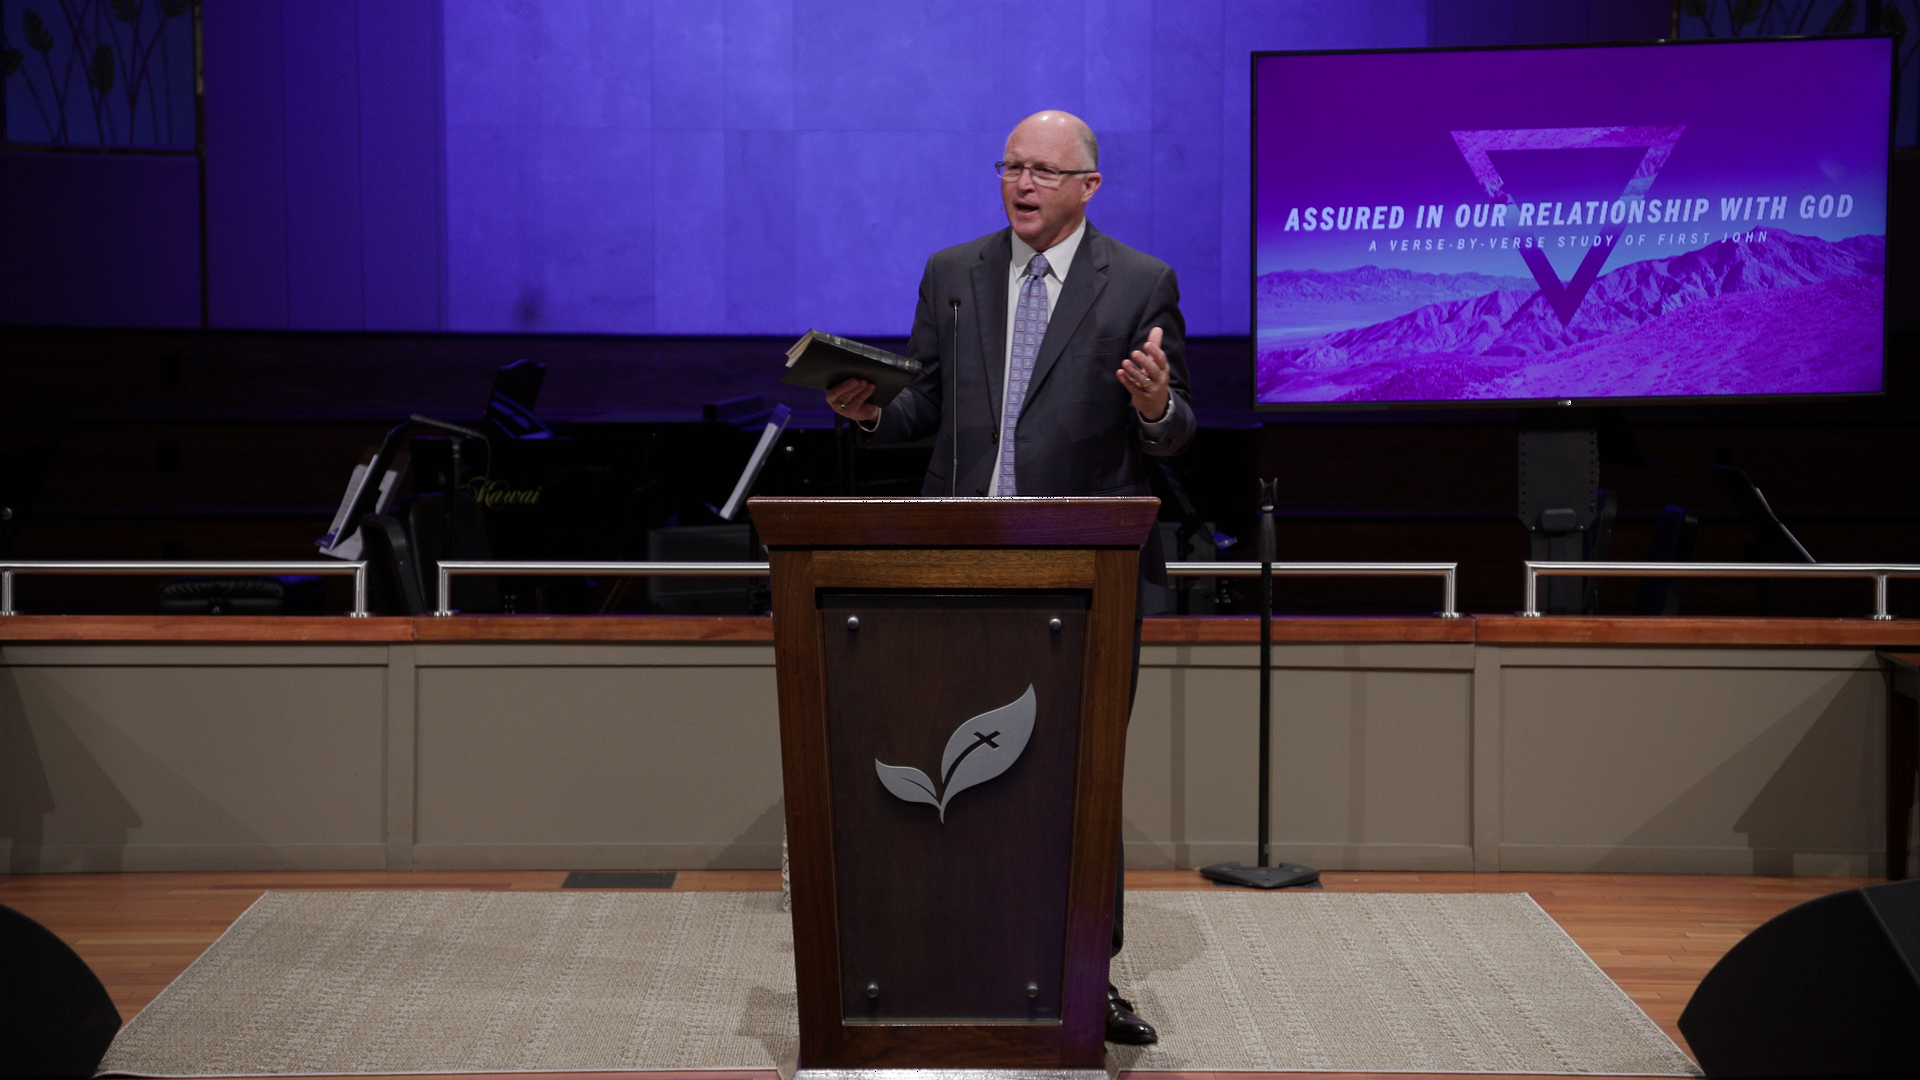 Pastor Paul Chappell: Assured In Our Relationship With God